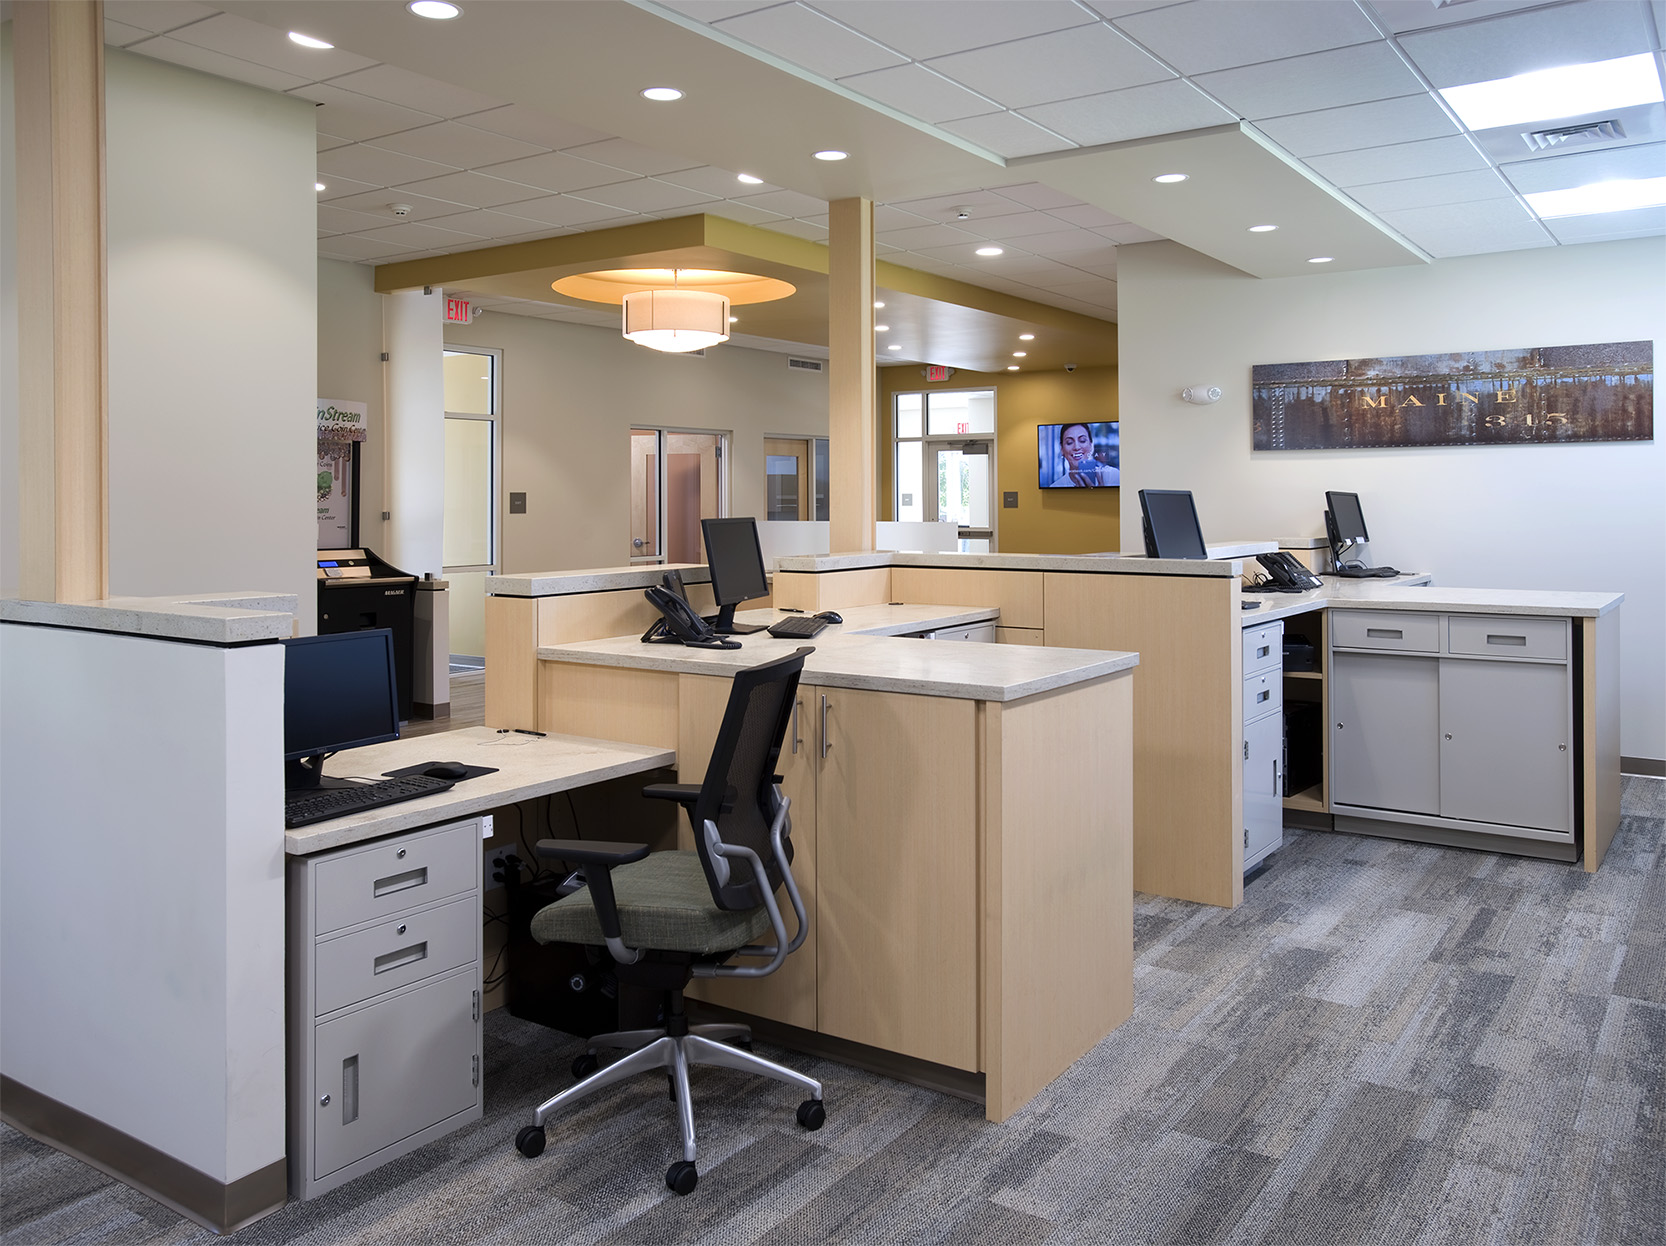 The expanded teller line accommodates member transactions more efficiently.